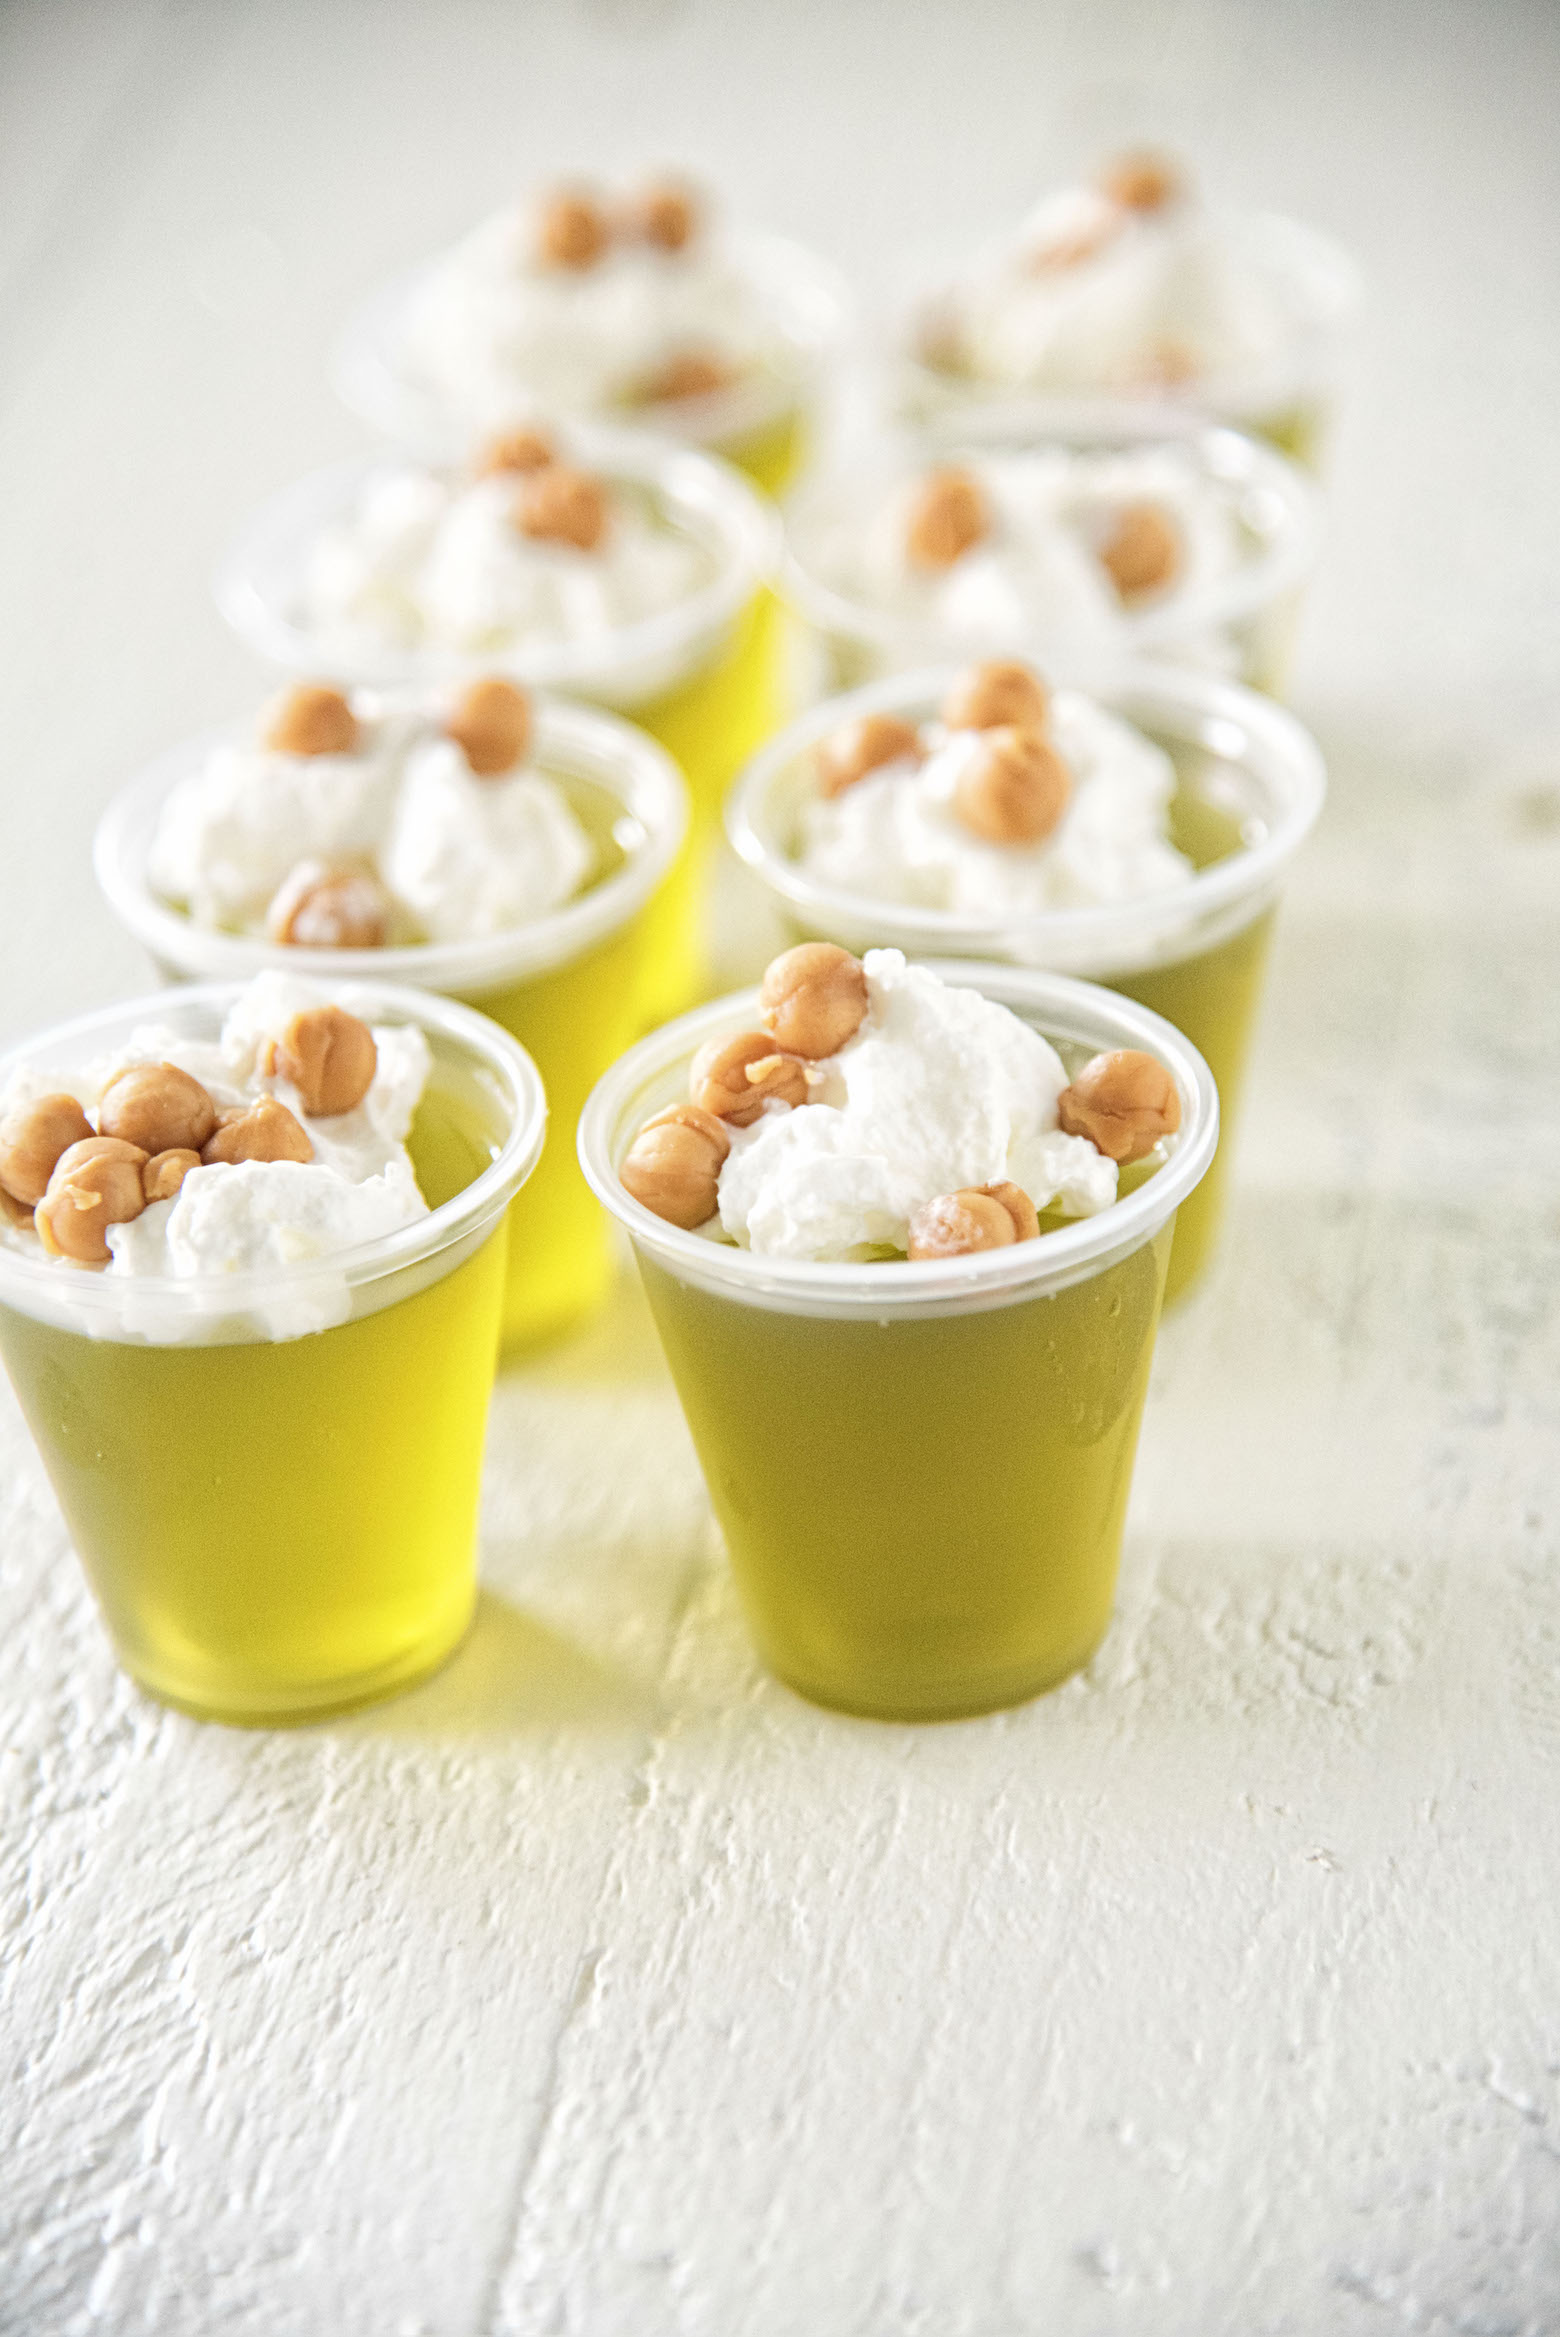 Salted Caramel Apple Whiskey Jell-O Shots